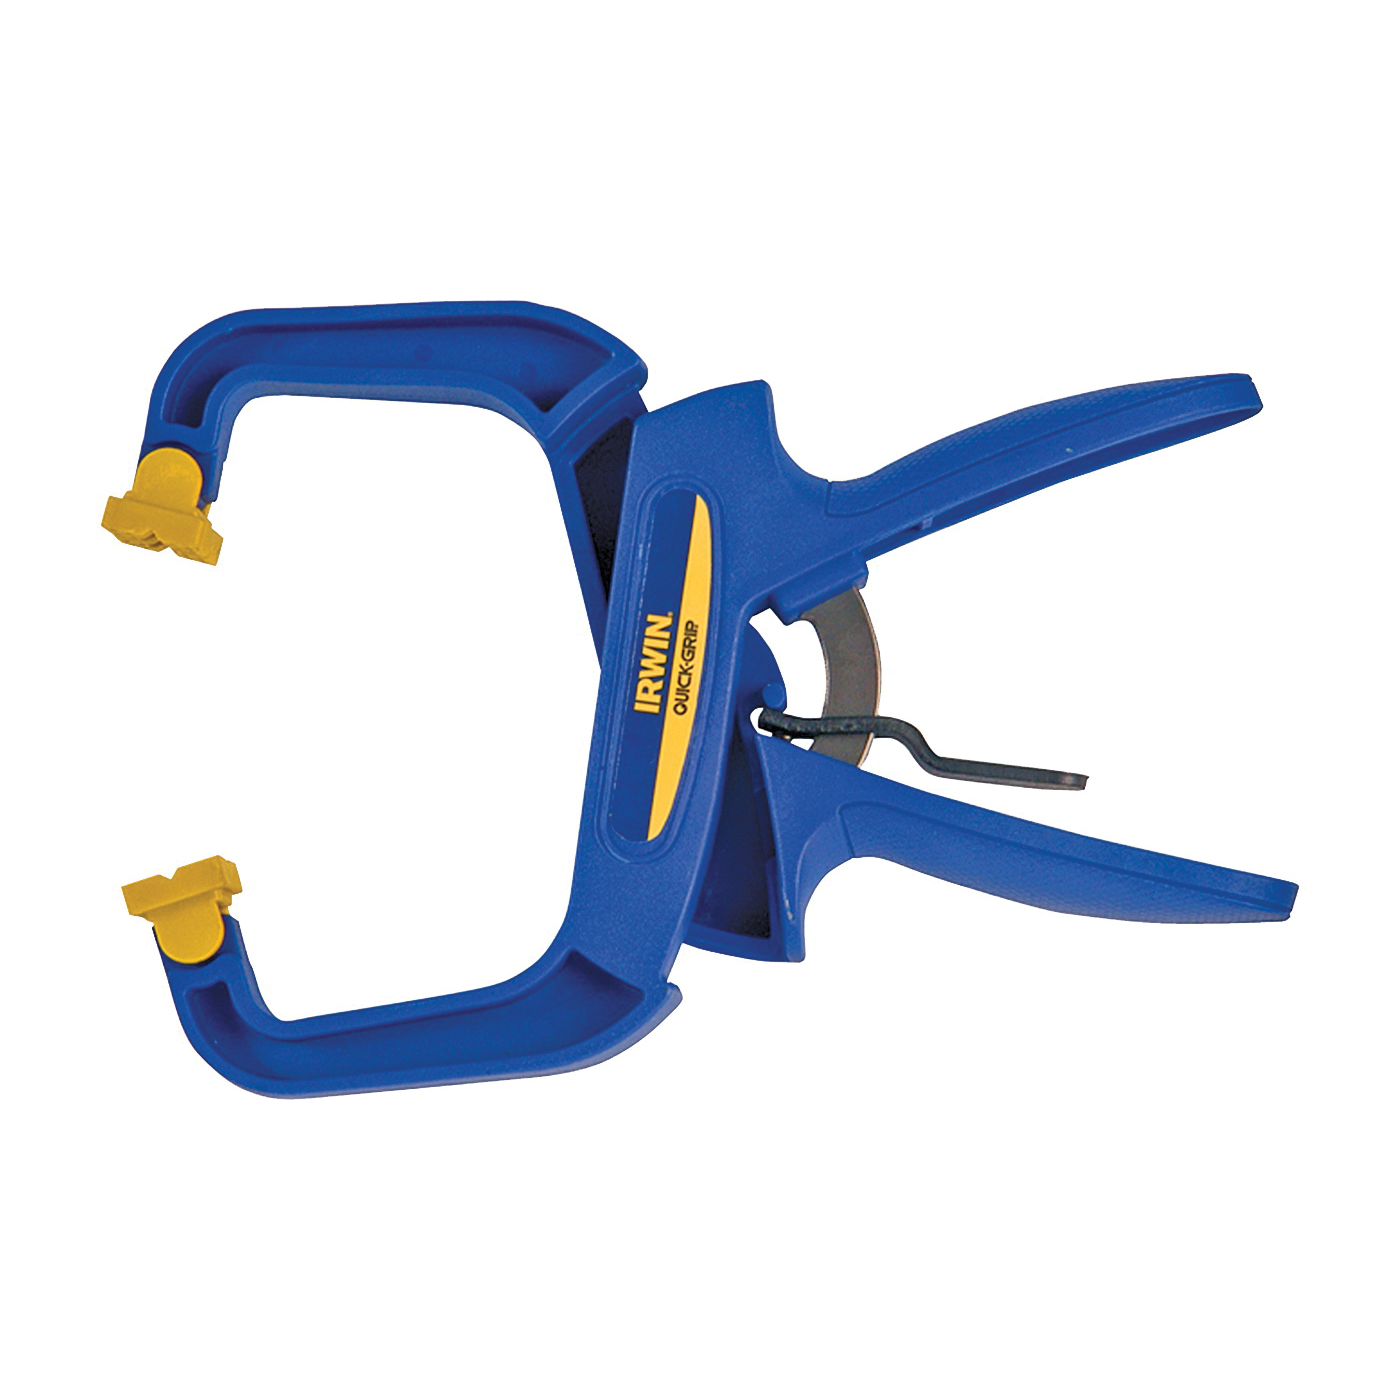 Picture of IRWIN 59400CD Handi-Clamp, 75 lb Clamping, 4 in Max Opening Size, 3 in D Throat, Resin Body